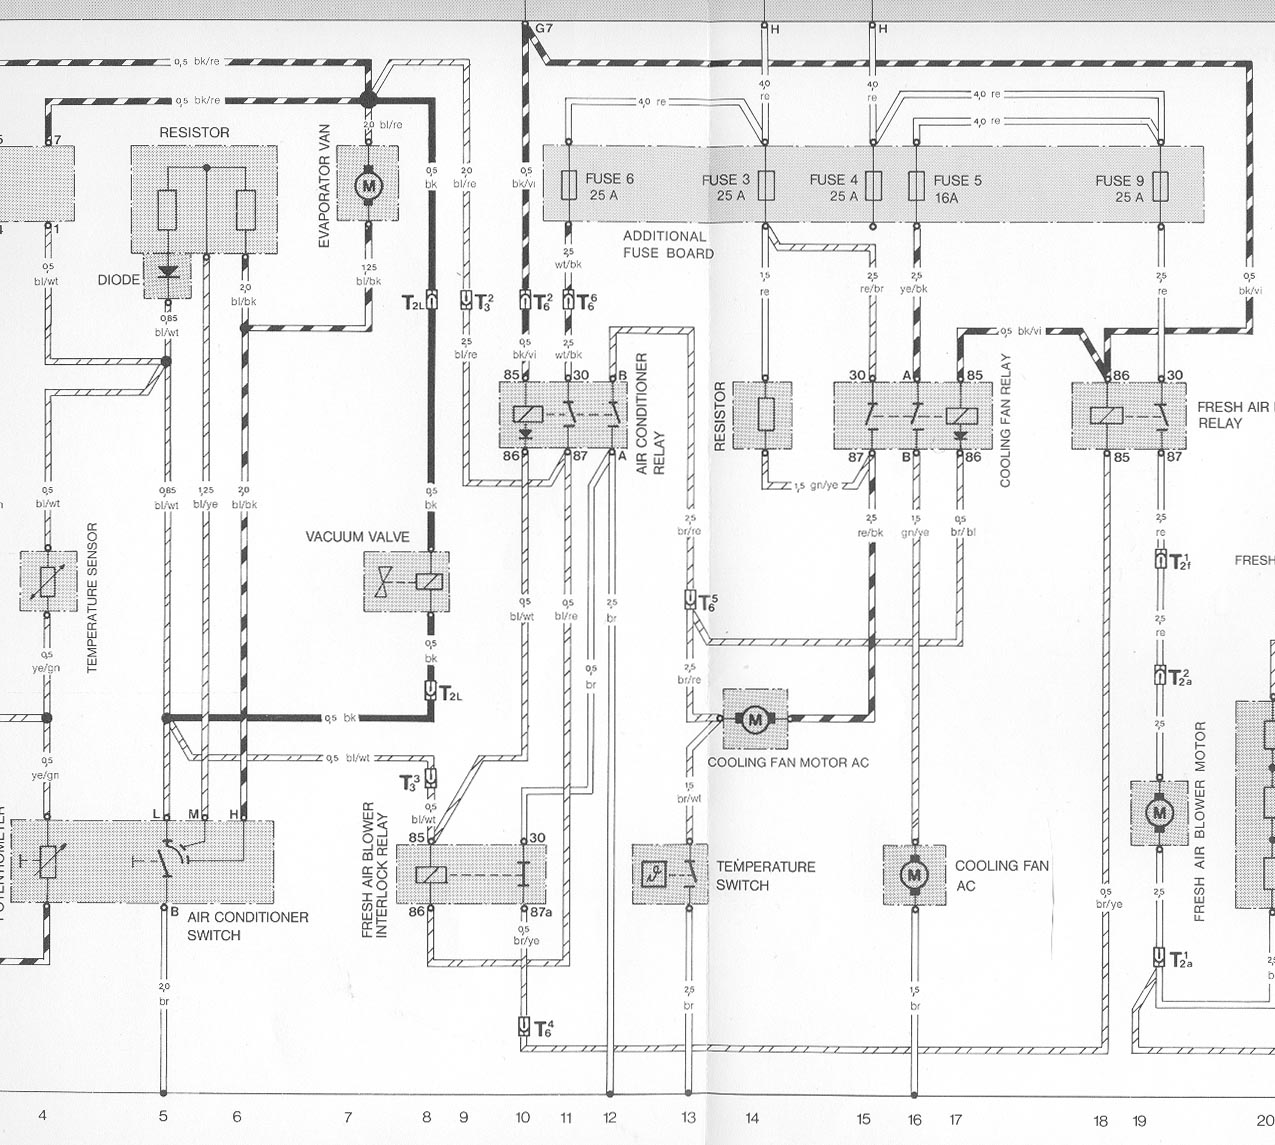 early_cooling_fan_with_ac cooling fan operation and troubleshooting Hayden Electric Fan Wiring Diagram at suagrazia.org